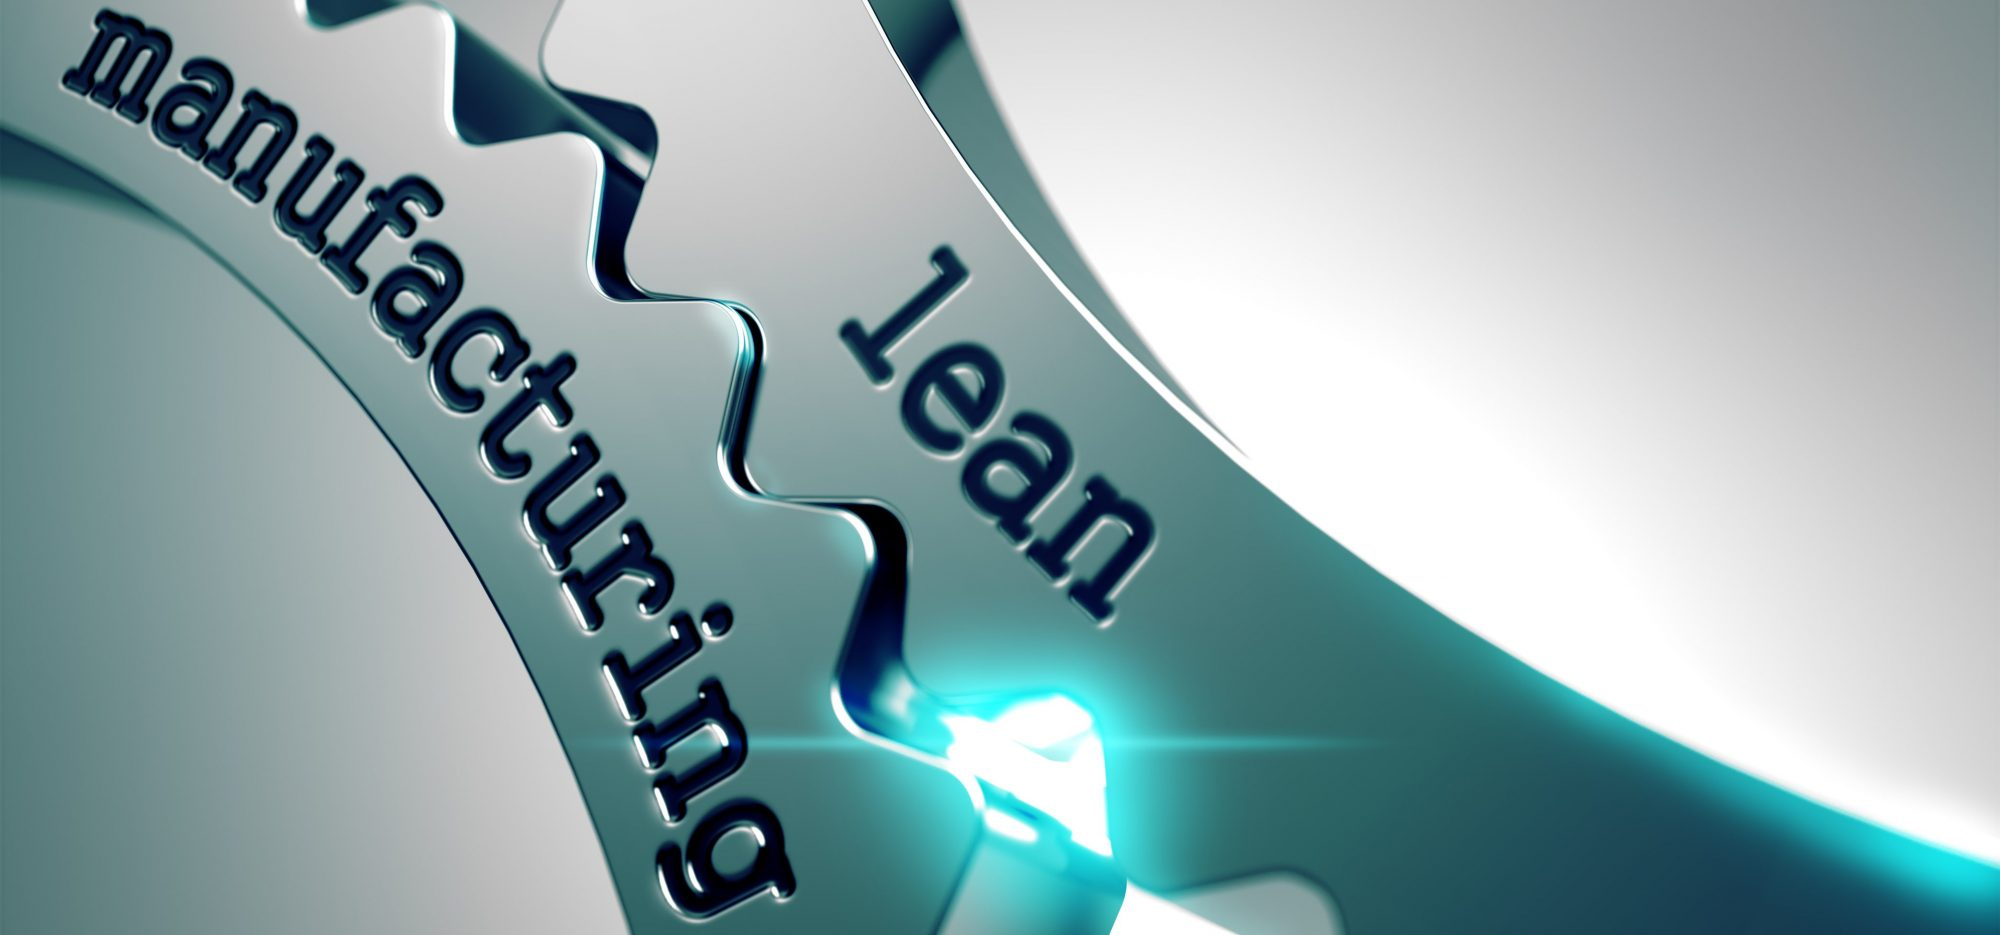 Reasons Of Why Companies Use Lean Manufacturing